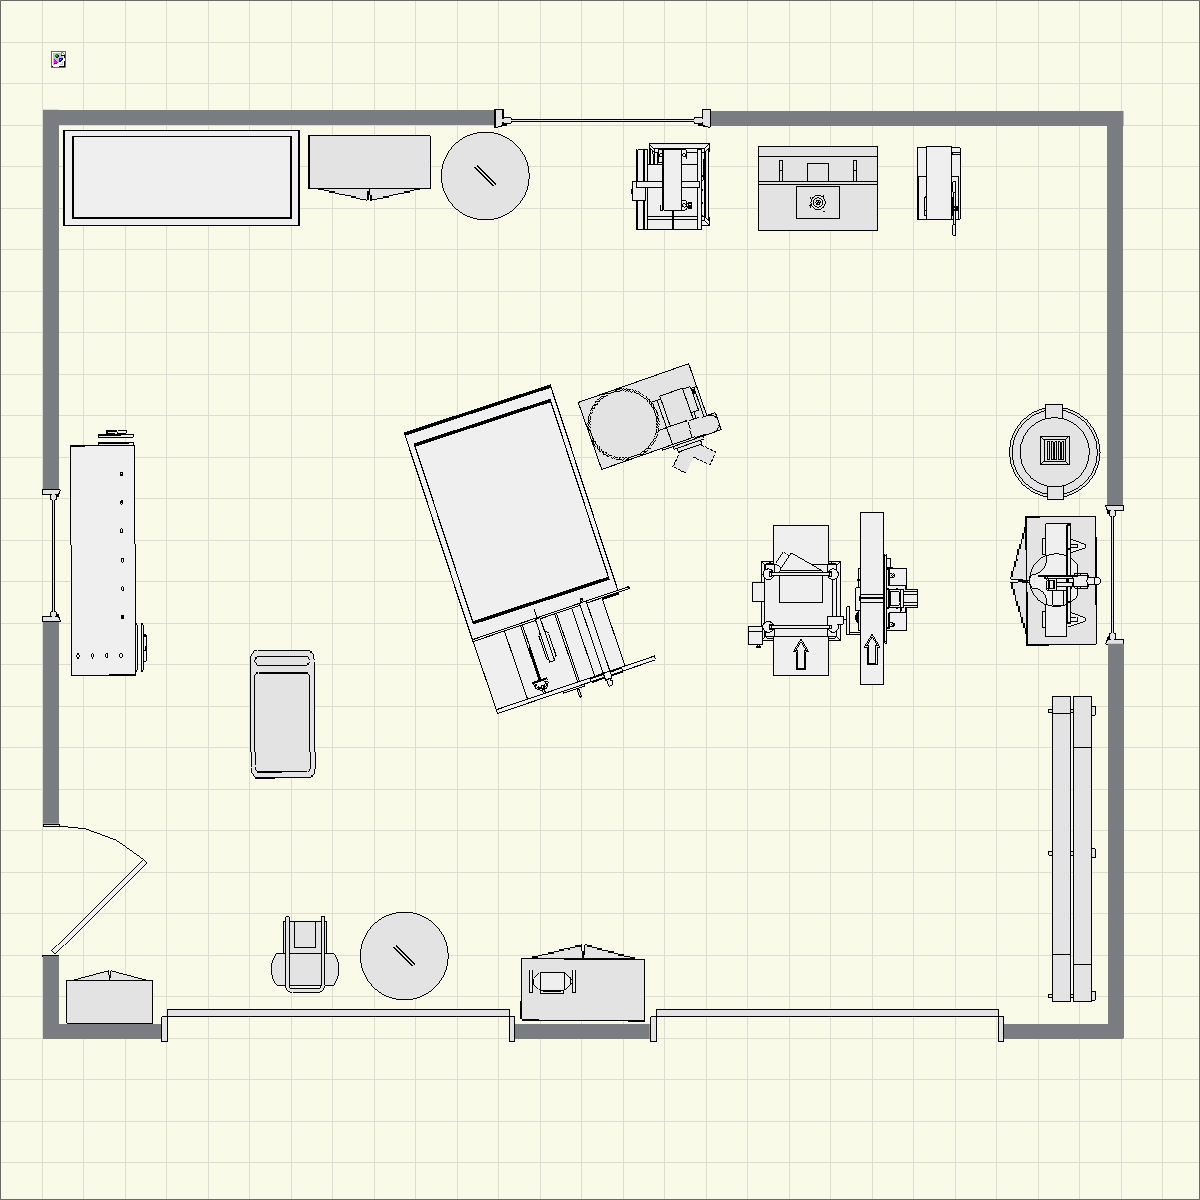 garage workshop layout. creating using finewoodworking.com\u0027s dream shop planner tool garage workshop layout h